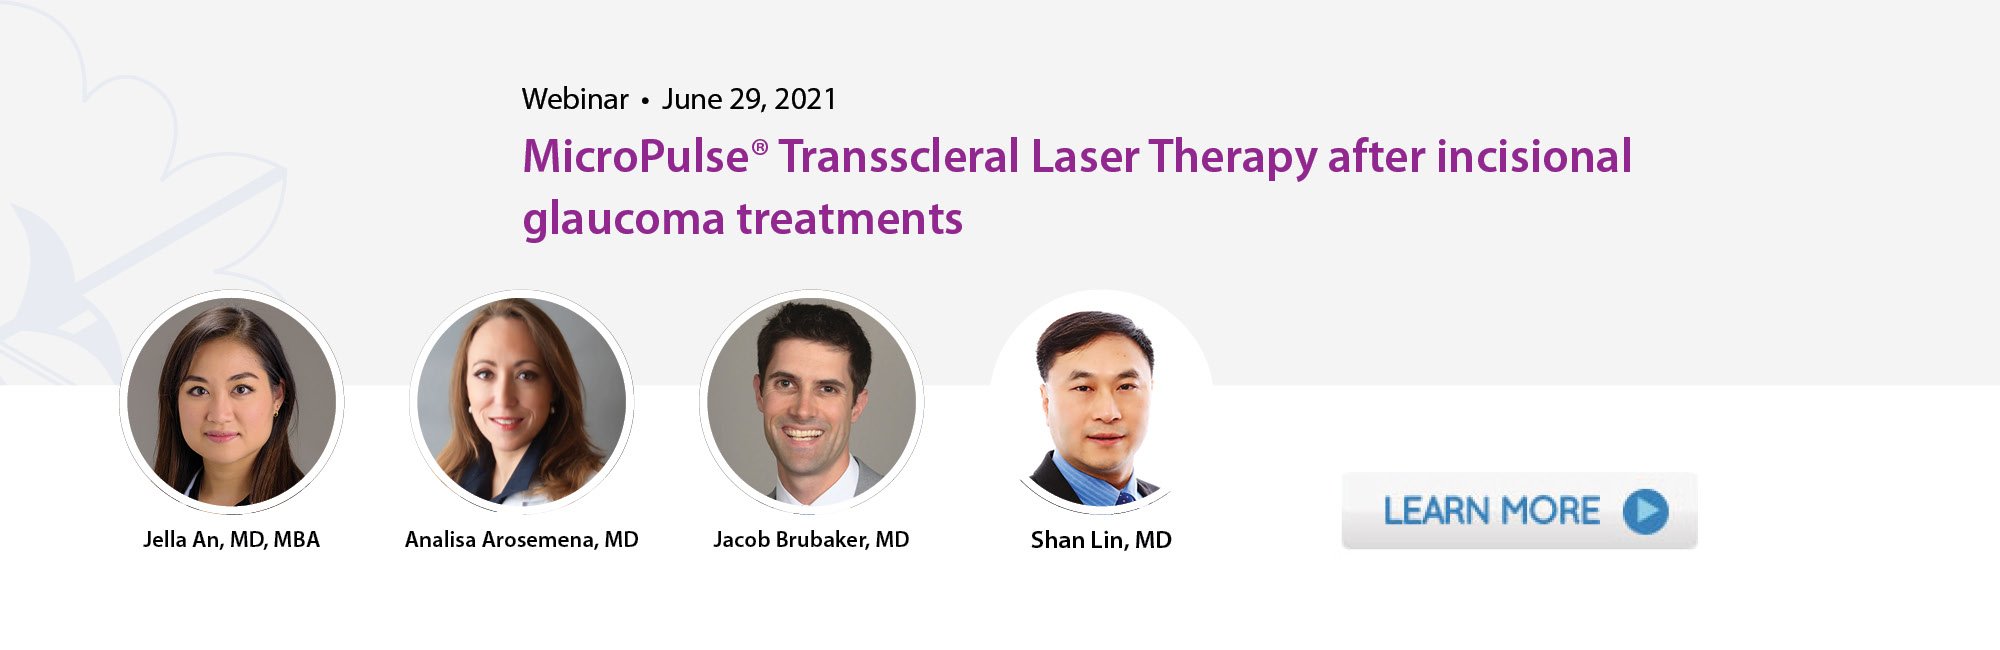 MicroPulse Transscleral Laser Therapy after incisional glaucoma treatments